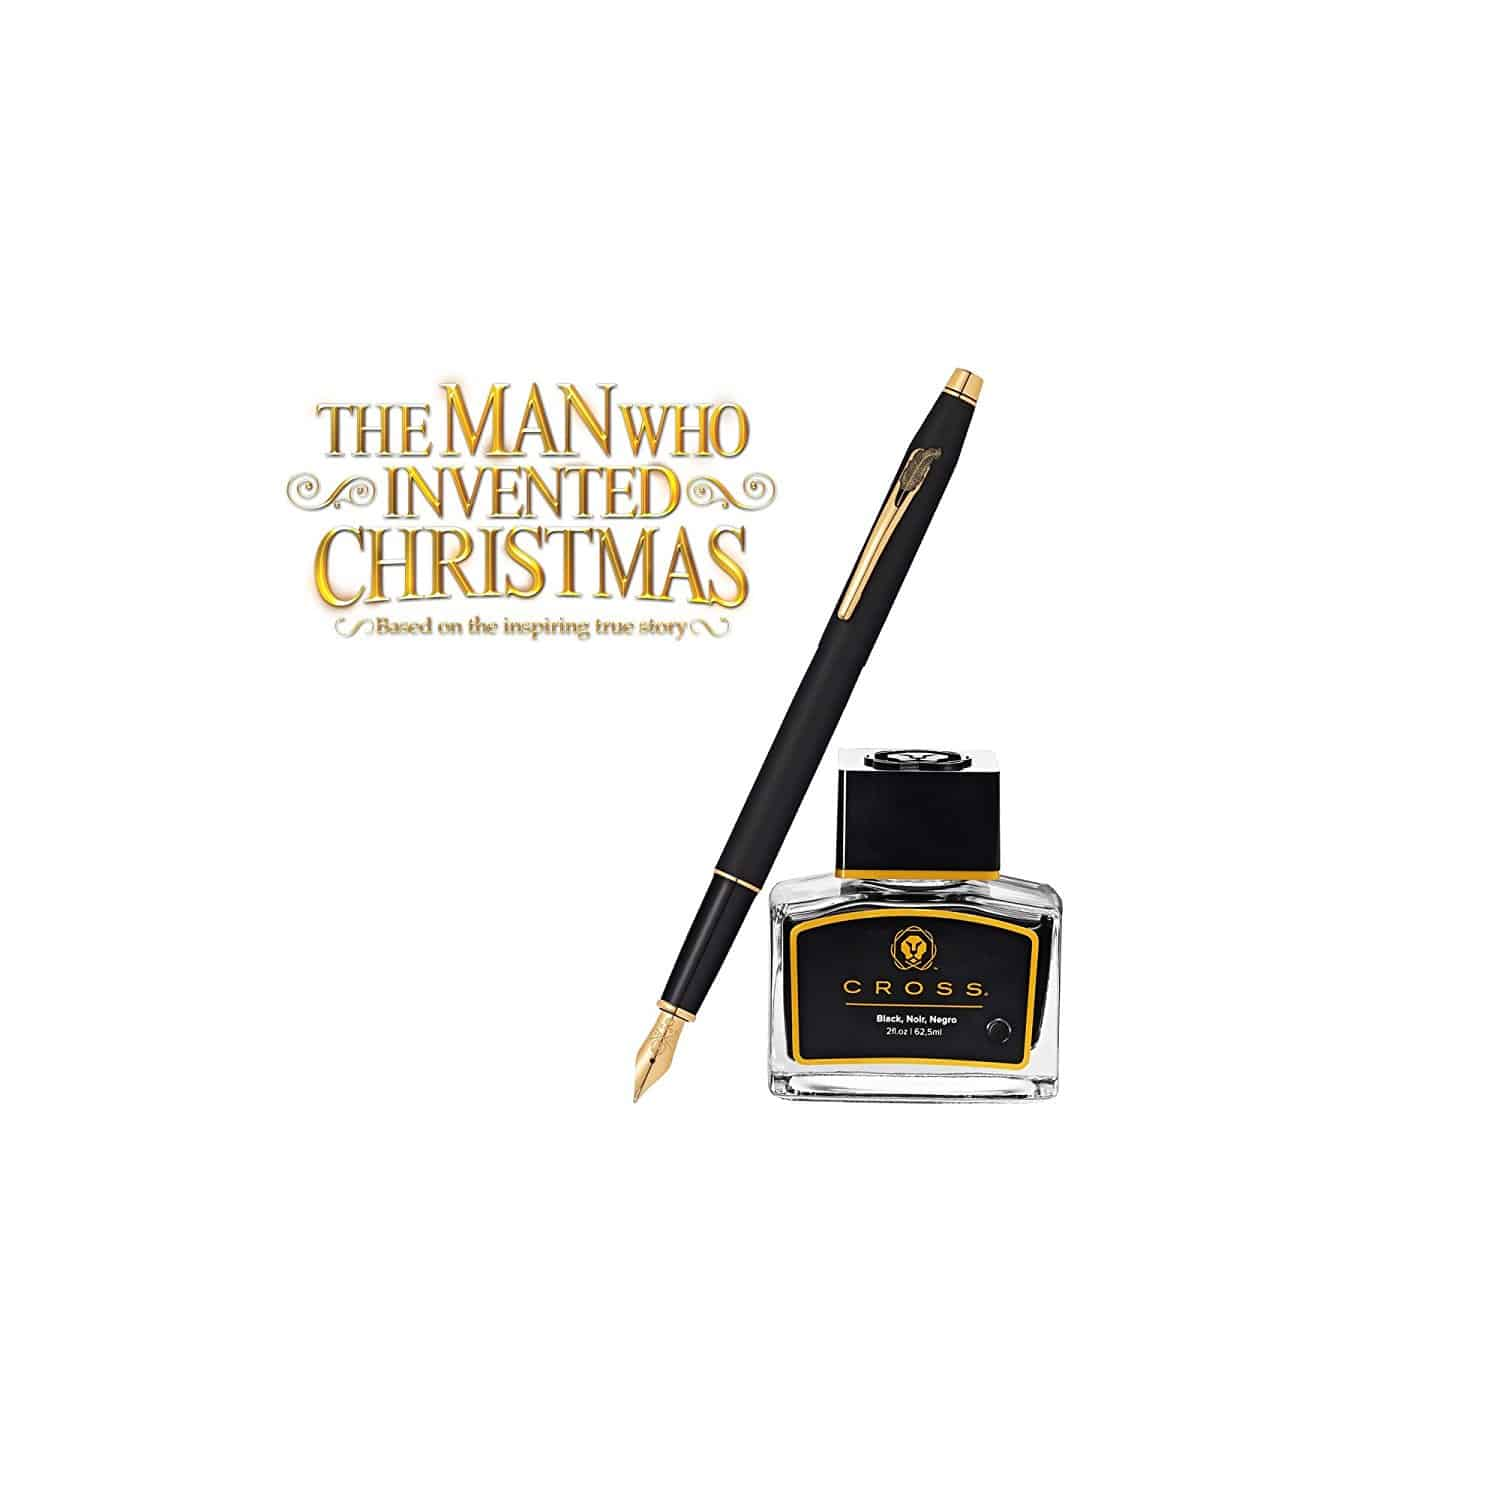 The Man Who Invented Christmas & Cross Fountain Pen